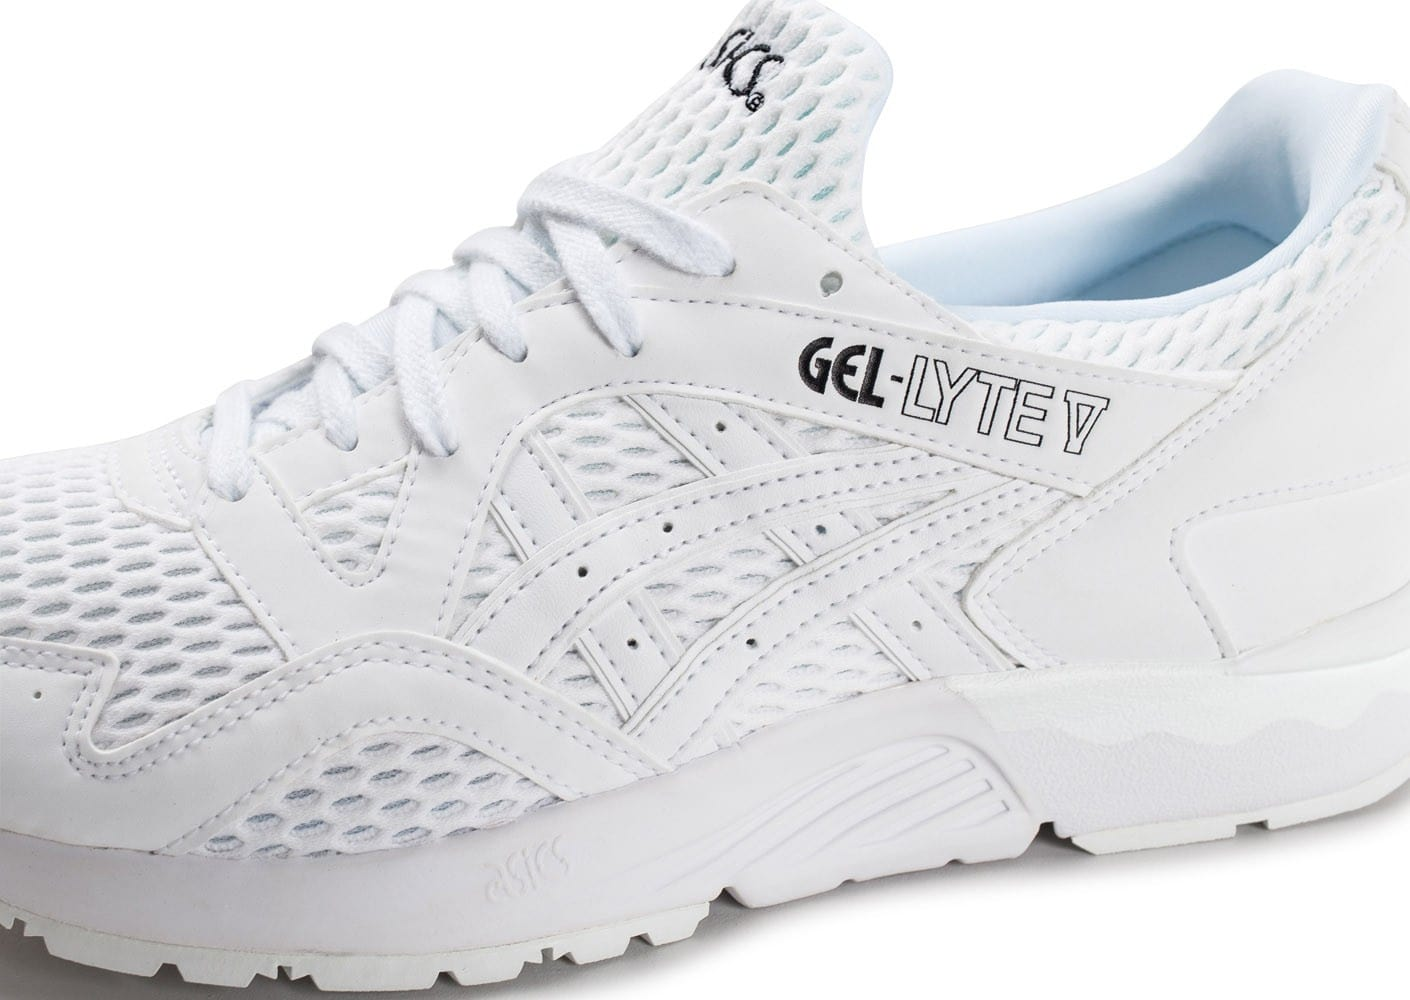 Asics Gel Lyte V blanche - Chaussures Baskets homme - Chausport b252f2a7b968